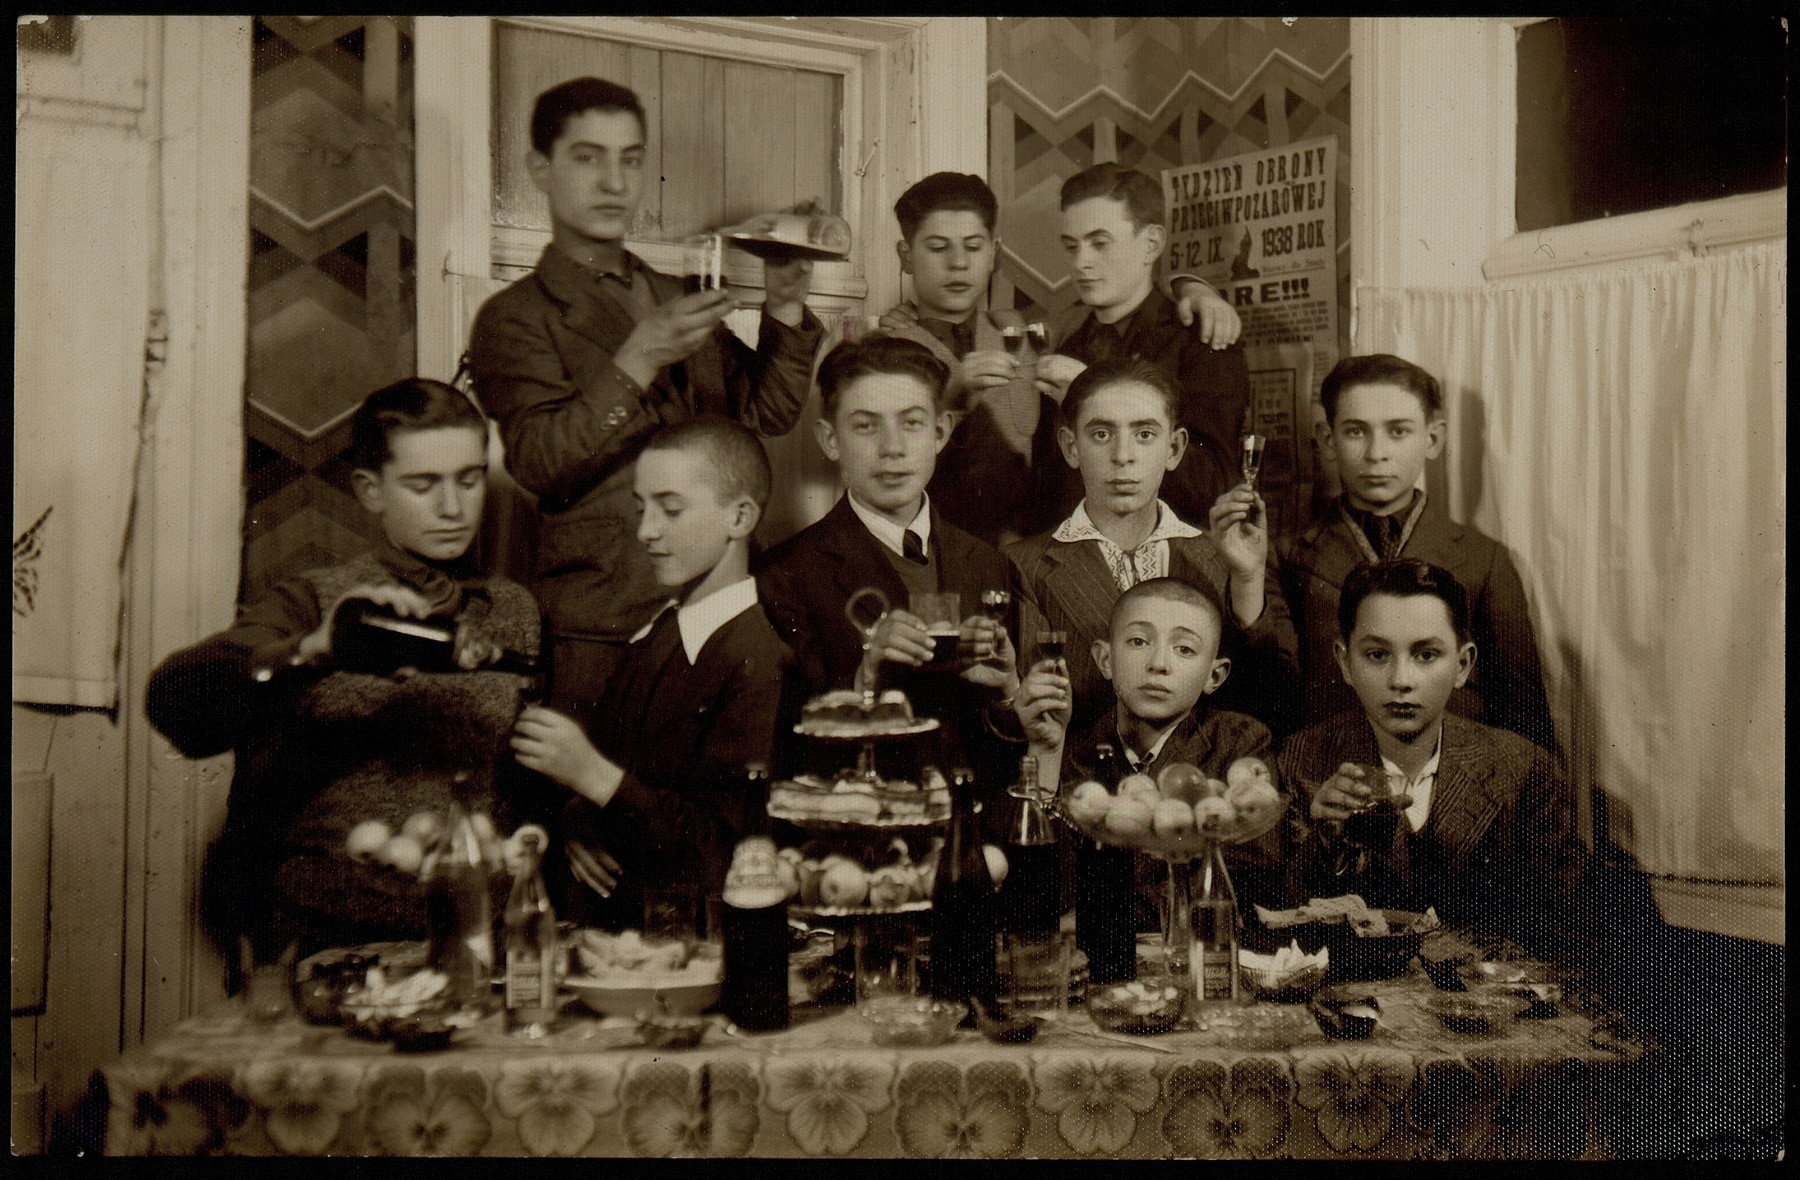 A farewell party for the Shlanski brothers in honor of their impending immigration to America.   Middle row (right to left): Benjamin Shlanski, Moshe Ginunski, Fischl Shlanski, unknown, Yehudah Gordon. Top row (left to right) Zalman Zubizki and Tuvia Blacher.  Names of other boys are unknown.